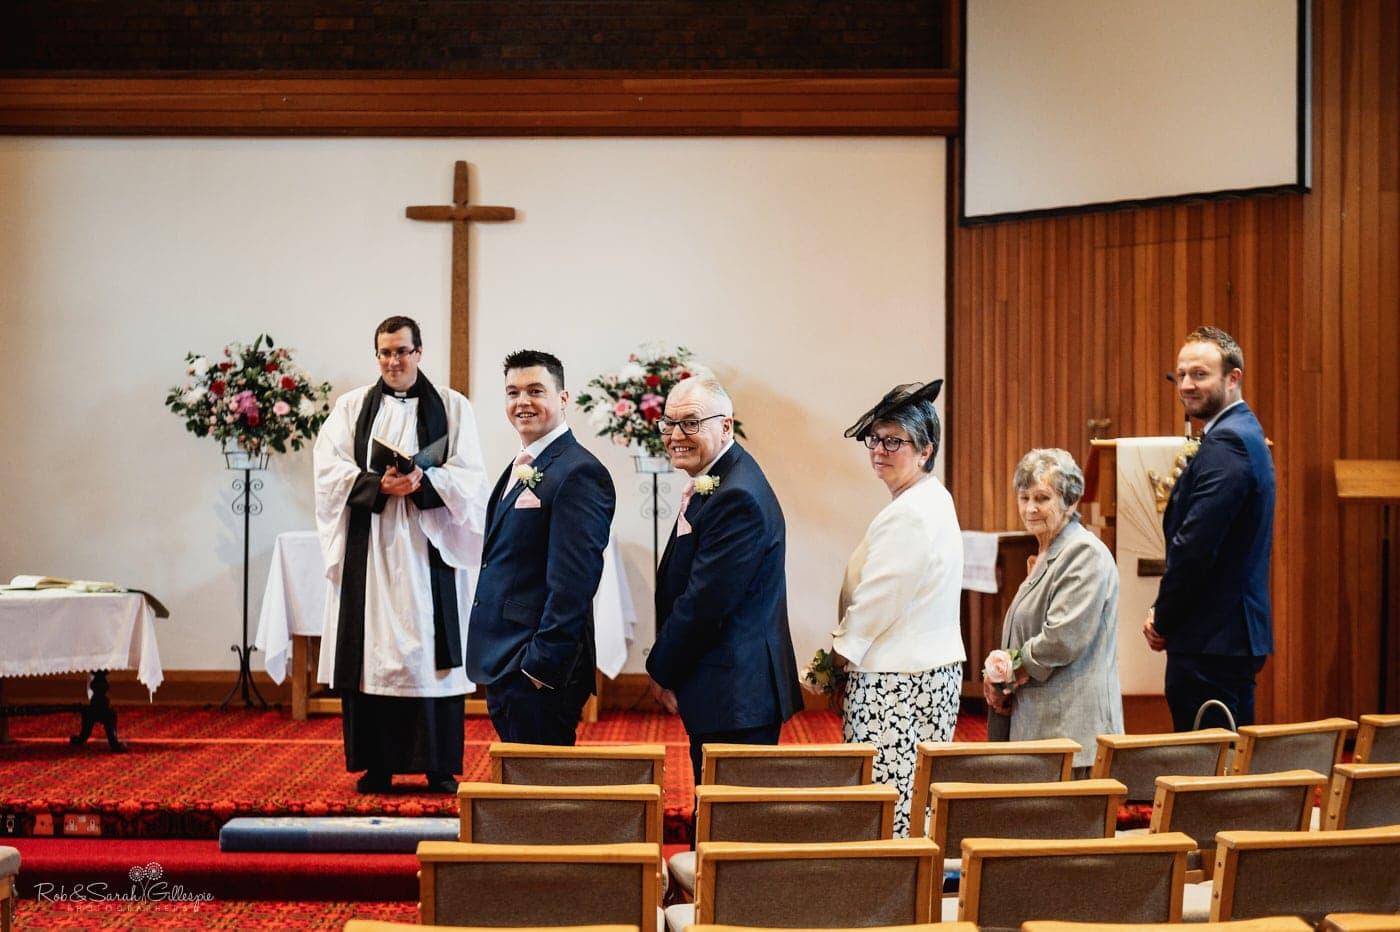 Groom and family turn to see bride entrance at small wedding ceremony